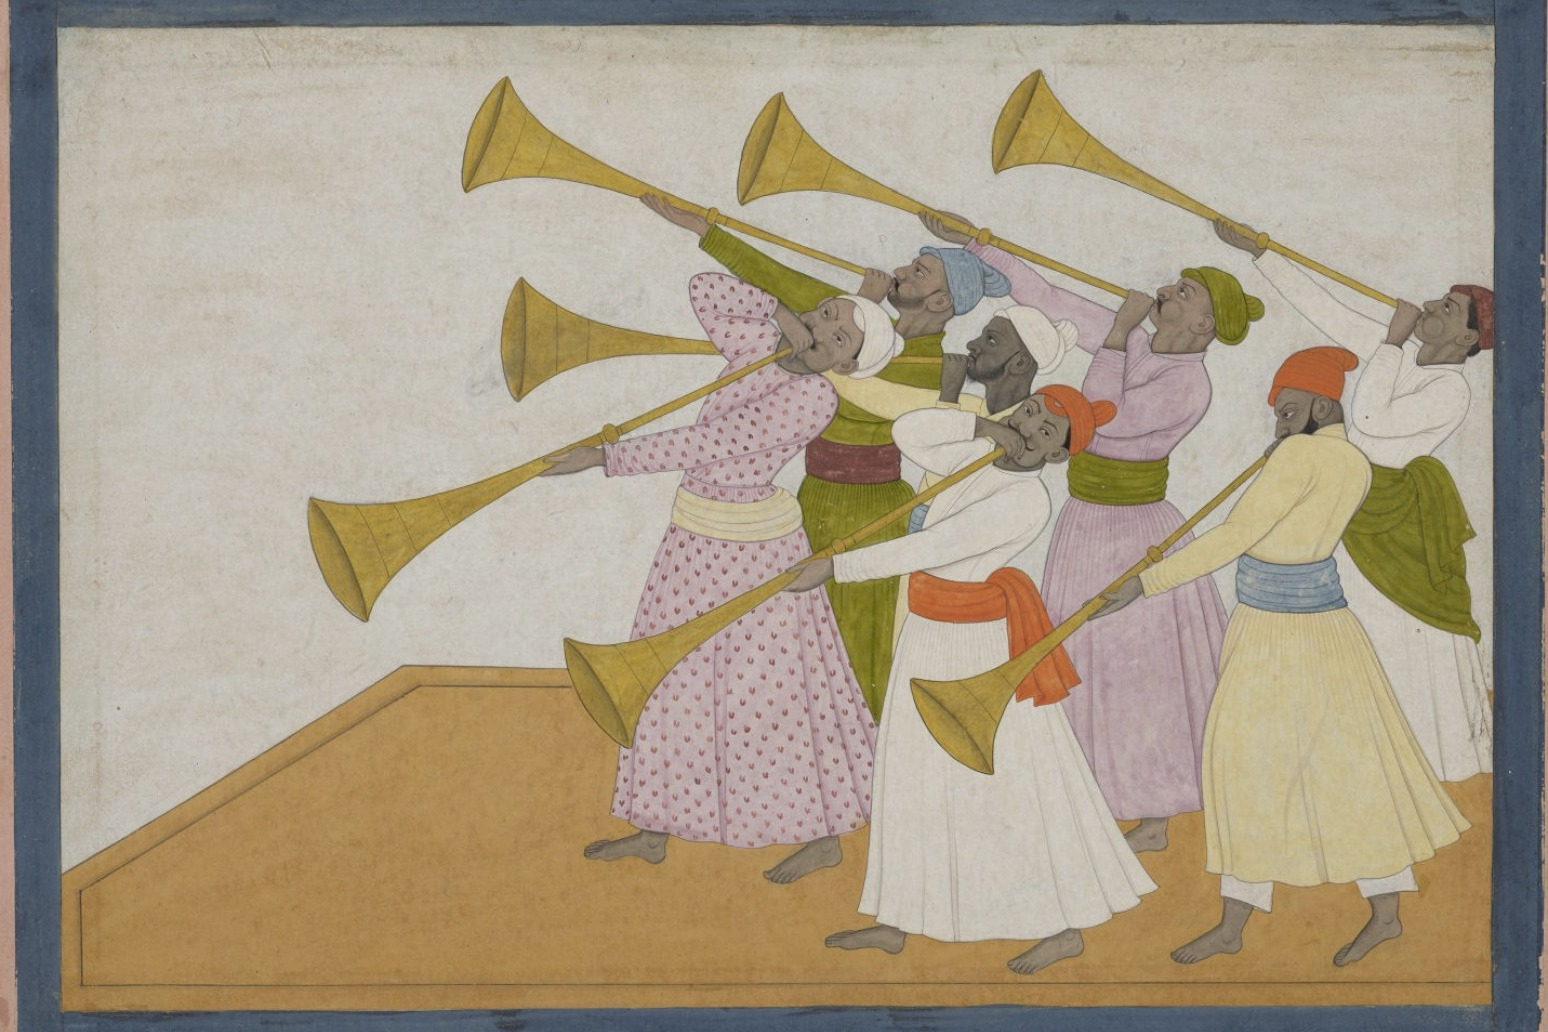 BRITISH MUSEUM SNAPS UP \'MASTERPIECE\' BY INDIAN PAINTER